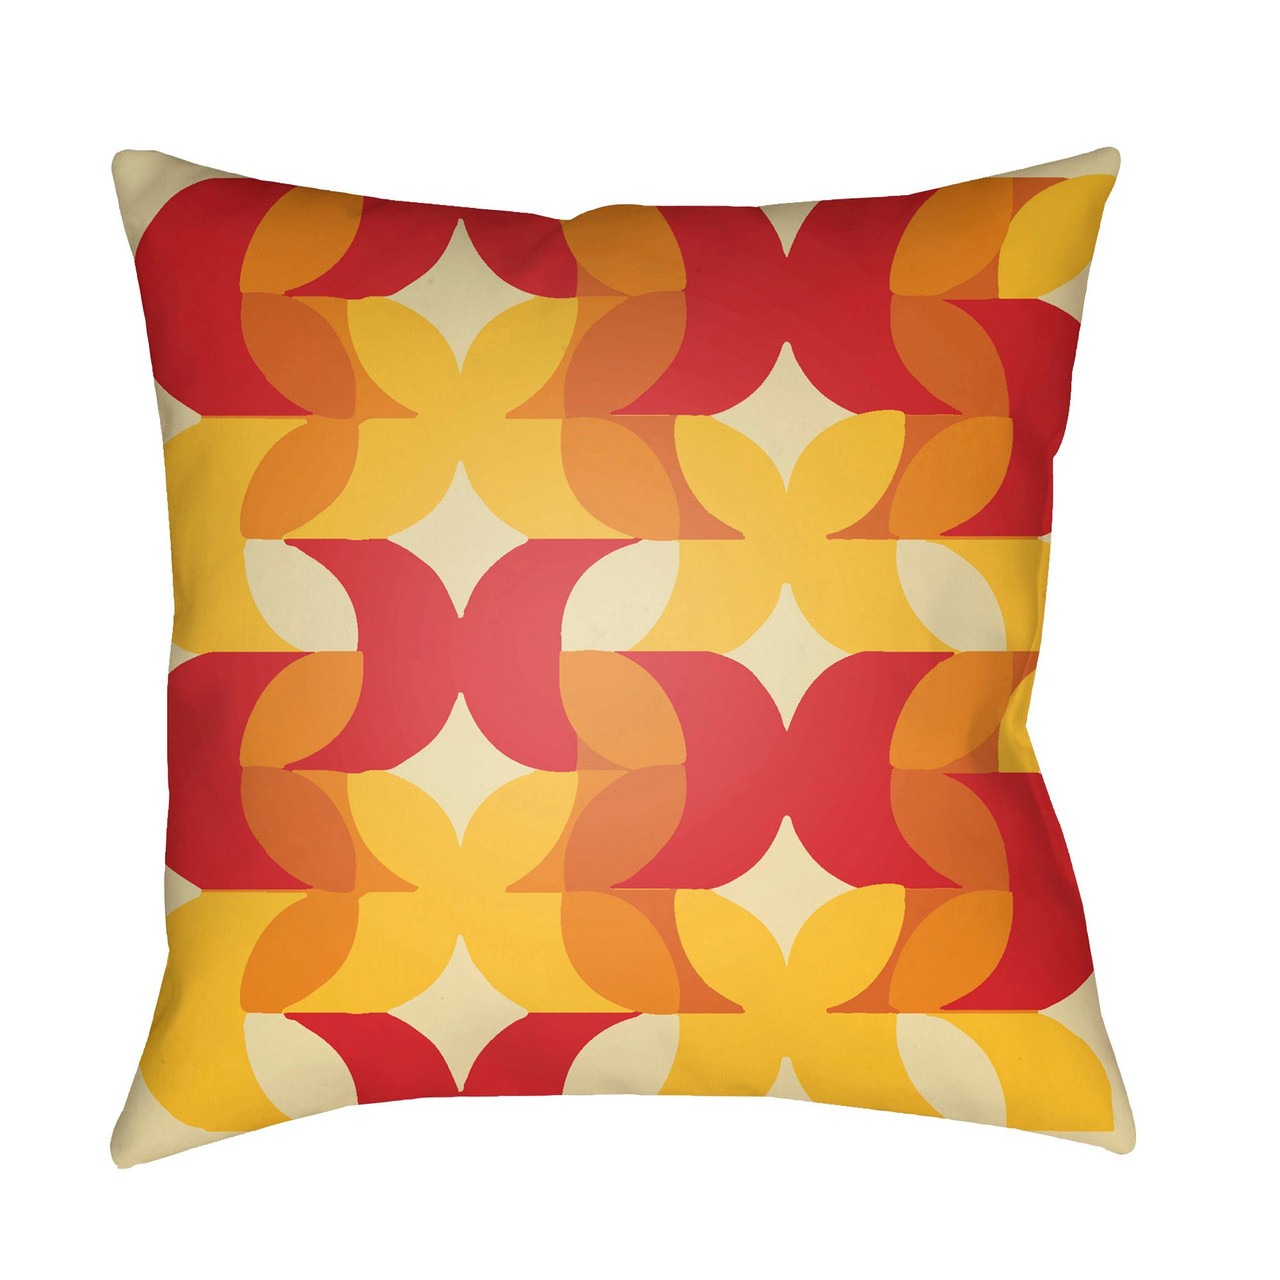 22 Red Yellow Geometric Patterned Square Throw Pillow Cover Christmas Central